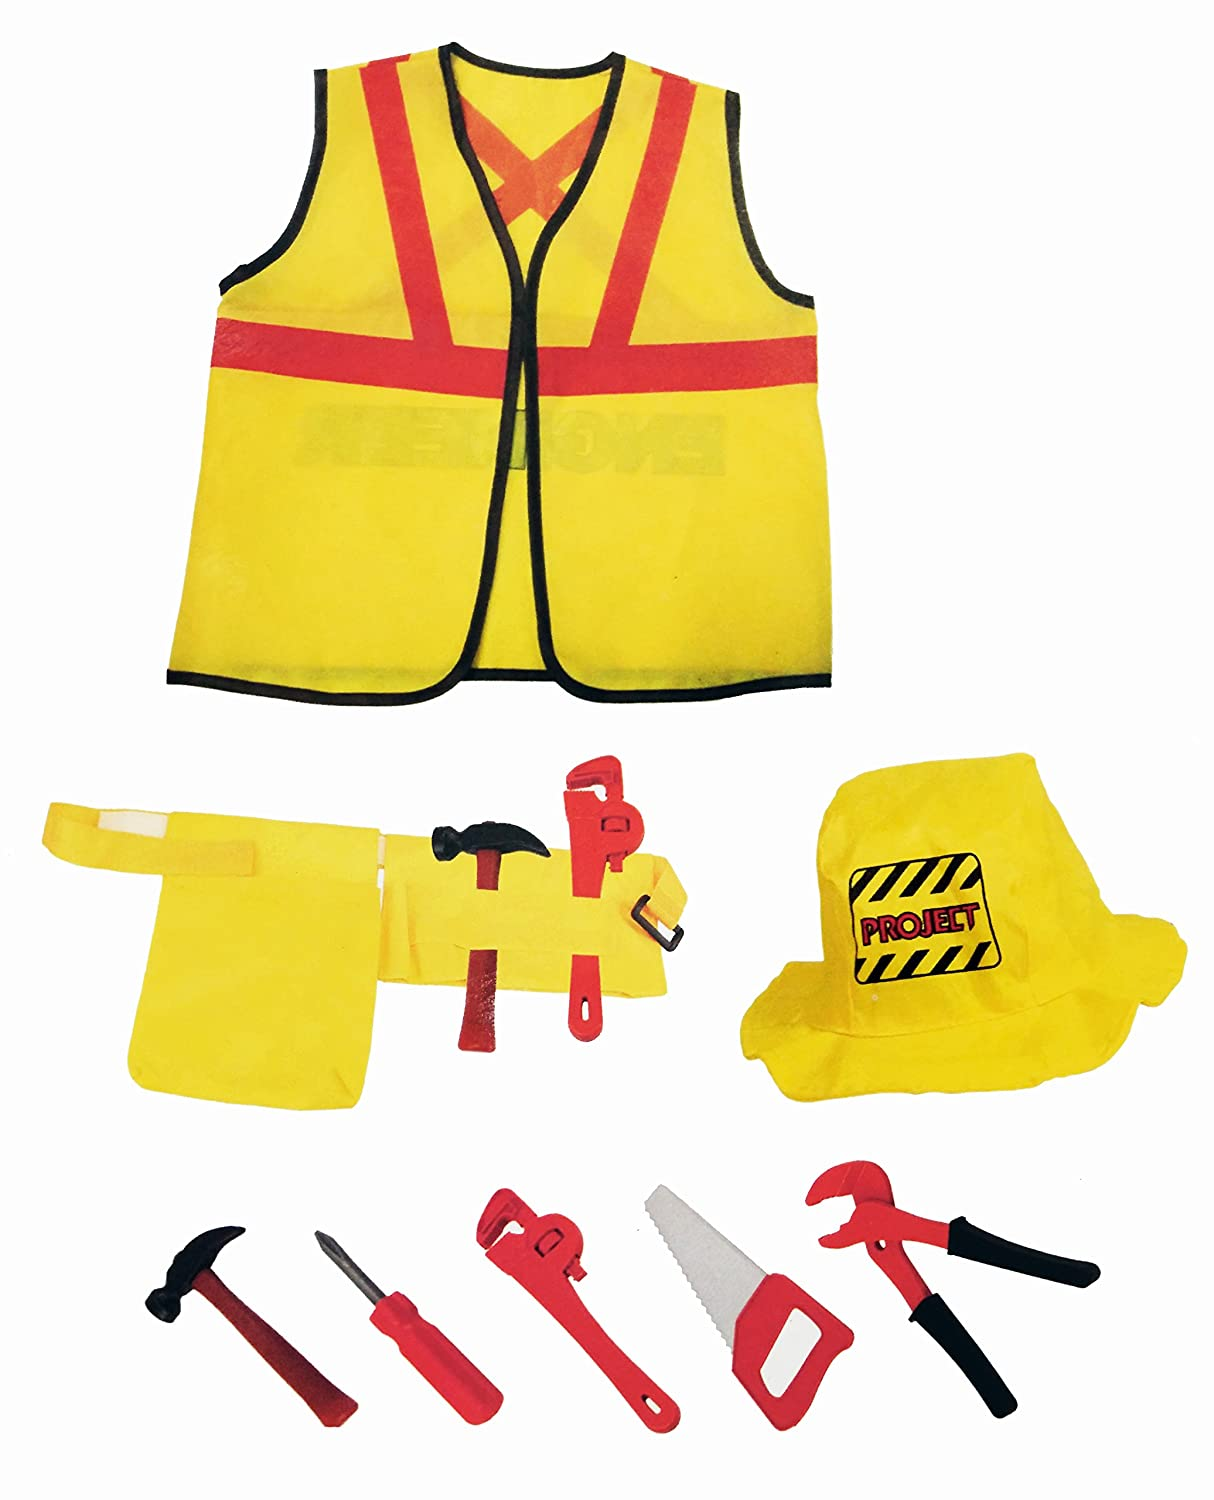 Amazon Construction Worker Kids Dress Up Costume Role Play Set With Tools 8 Pcs Toys Games